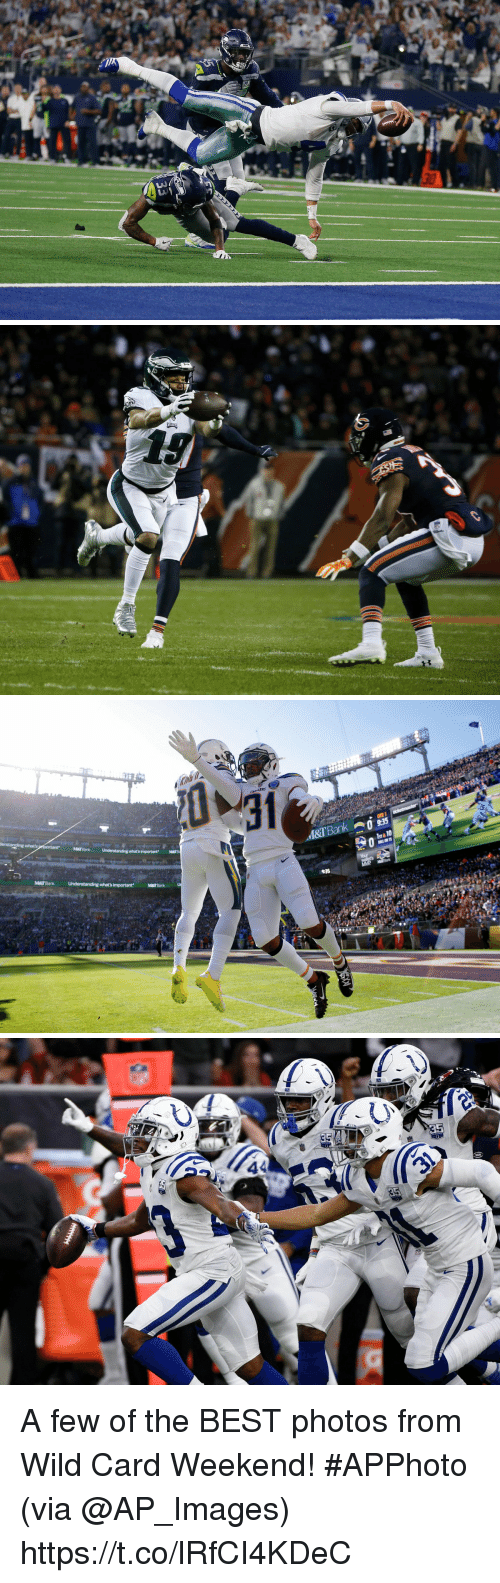 ap images: A few of the BEST photos from Wild Card Weekend! #APPhoto  (via @AP_Images) https://t.co/lRfCI4KDeC